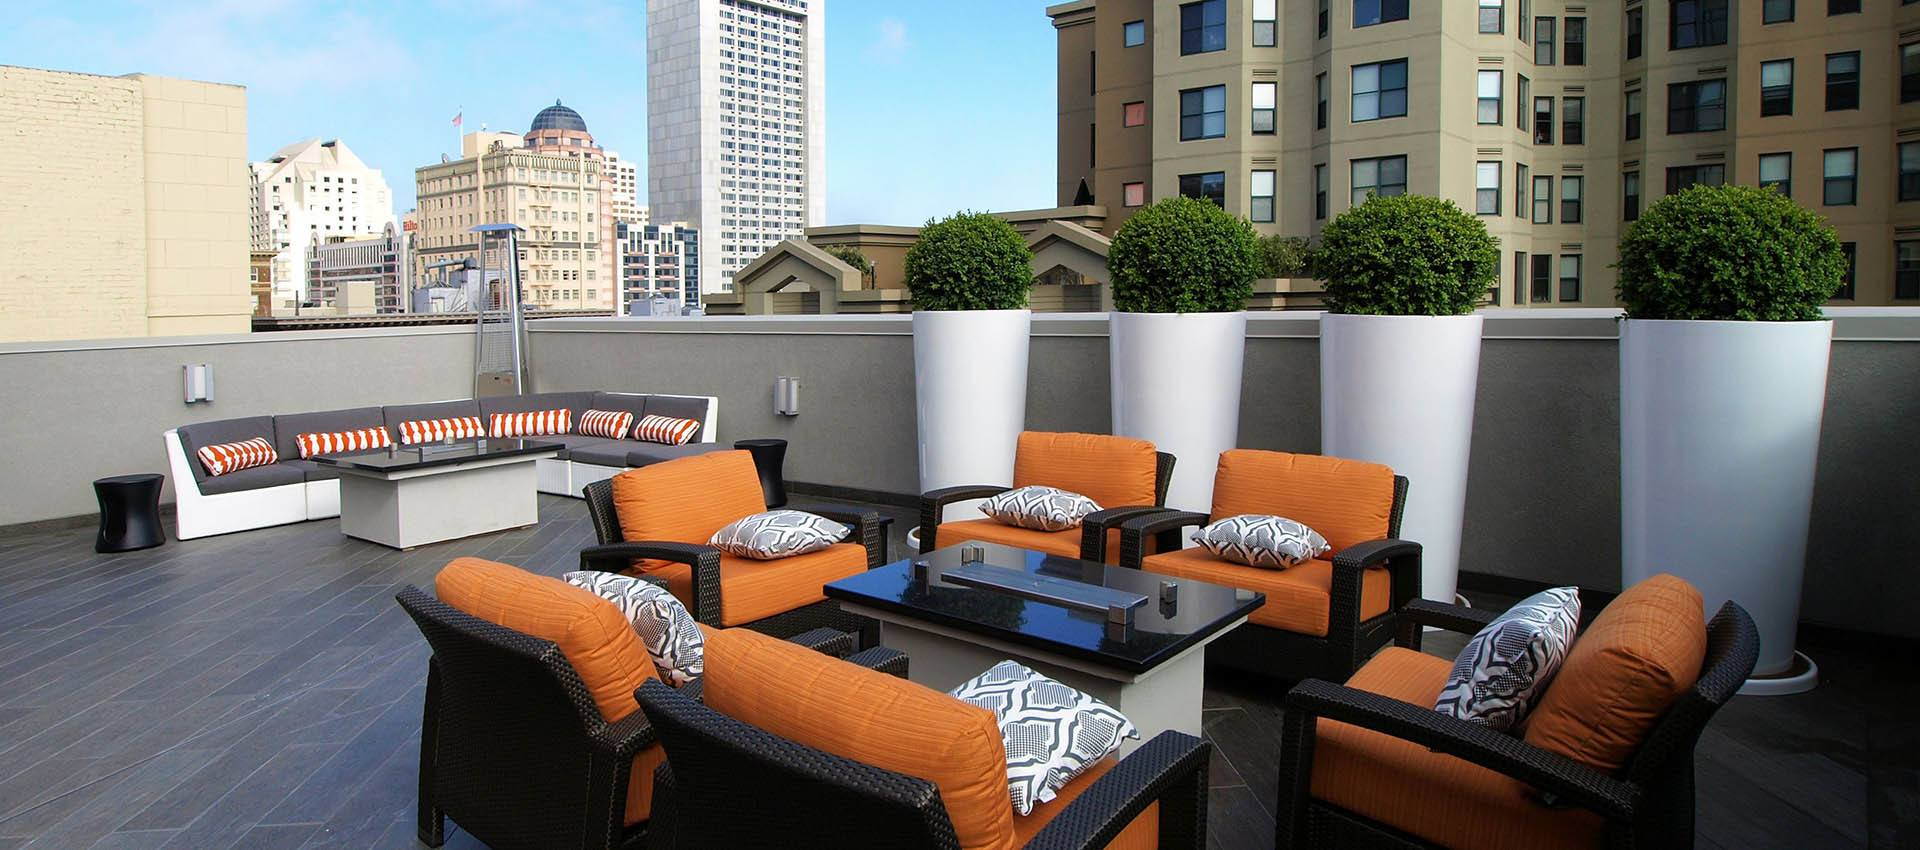 Rooftop Seating With View at Tower 737 Condominium Rentals in San Francisco